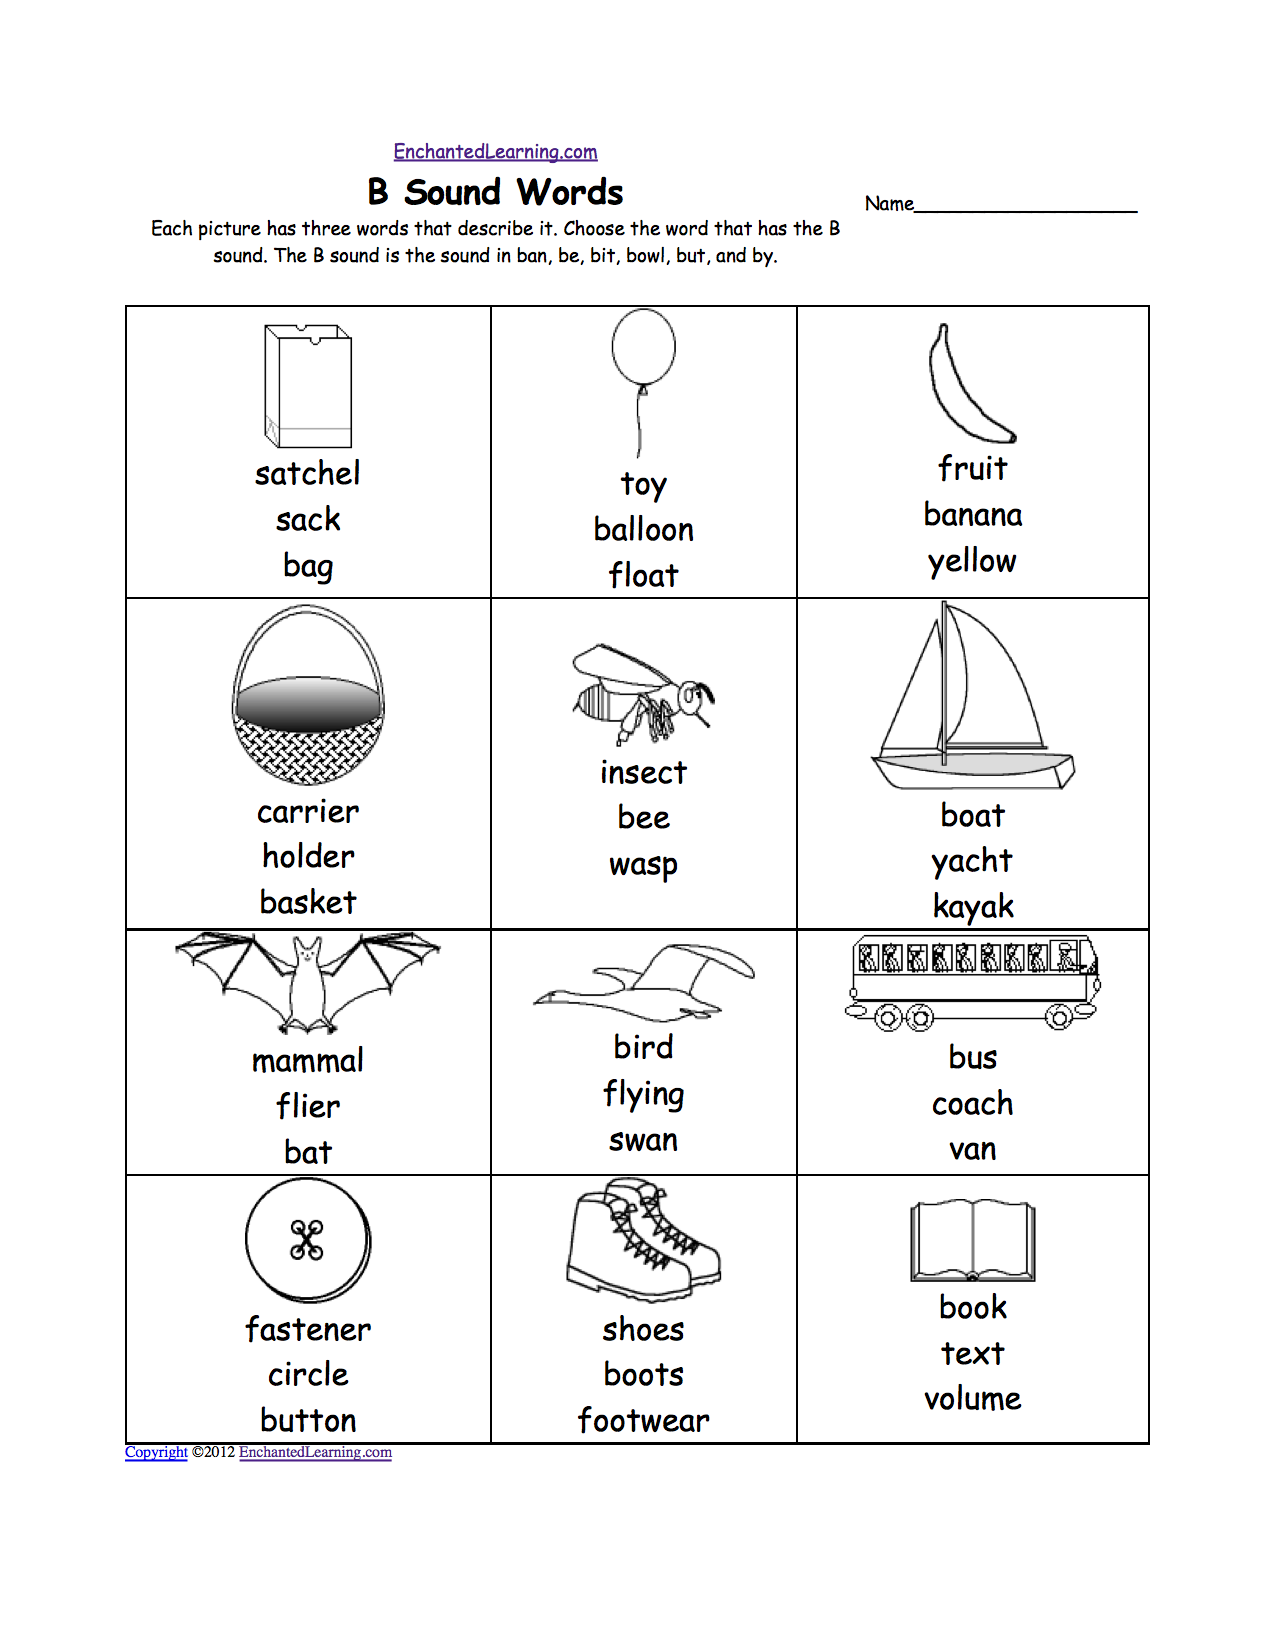 Weirdmailus  Inspiring Phonics Worksheets Multiple Choice Worksheets To Print  With Heavenly Quotbquot Sound Phonics Worksheet Multiple Choice Each Picture Has Three Words That Describe It Choose The Word That Has A Quotbquot Sound The Quotbquot Sound Is The Sound  With Extraordinary Peer Pressure Worksheets For Kids Also Alphabet Letters Worksheets Kindergarten In Addition Science Key Stage  Worksheets And Sentence Patterns Worksheet As Well As Multiple Intelligences Worksheets Additionally Hebrew Letter Worksheets From Enchantedlearningcom With Weirdmailus  Heavenly Phonics Worksheets Multiple Choice Worksheets To Print  With Extraordinary Quotbquot Sound Phonics Worksheet Multiple Choice Each Picture Has Three Words That Describe It Choose The Word That Has A Quotbquot Sound The Quotbquot Sound Is The Sound  And Inspiring Peer Pressure Worksheets For Kids Also Alphabet Letters Worksheets Kindergarten In Addition Science Key Stage  Worksheets From Enchantedlearningcom